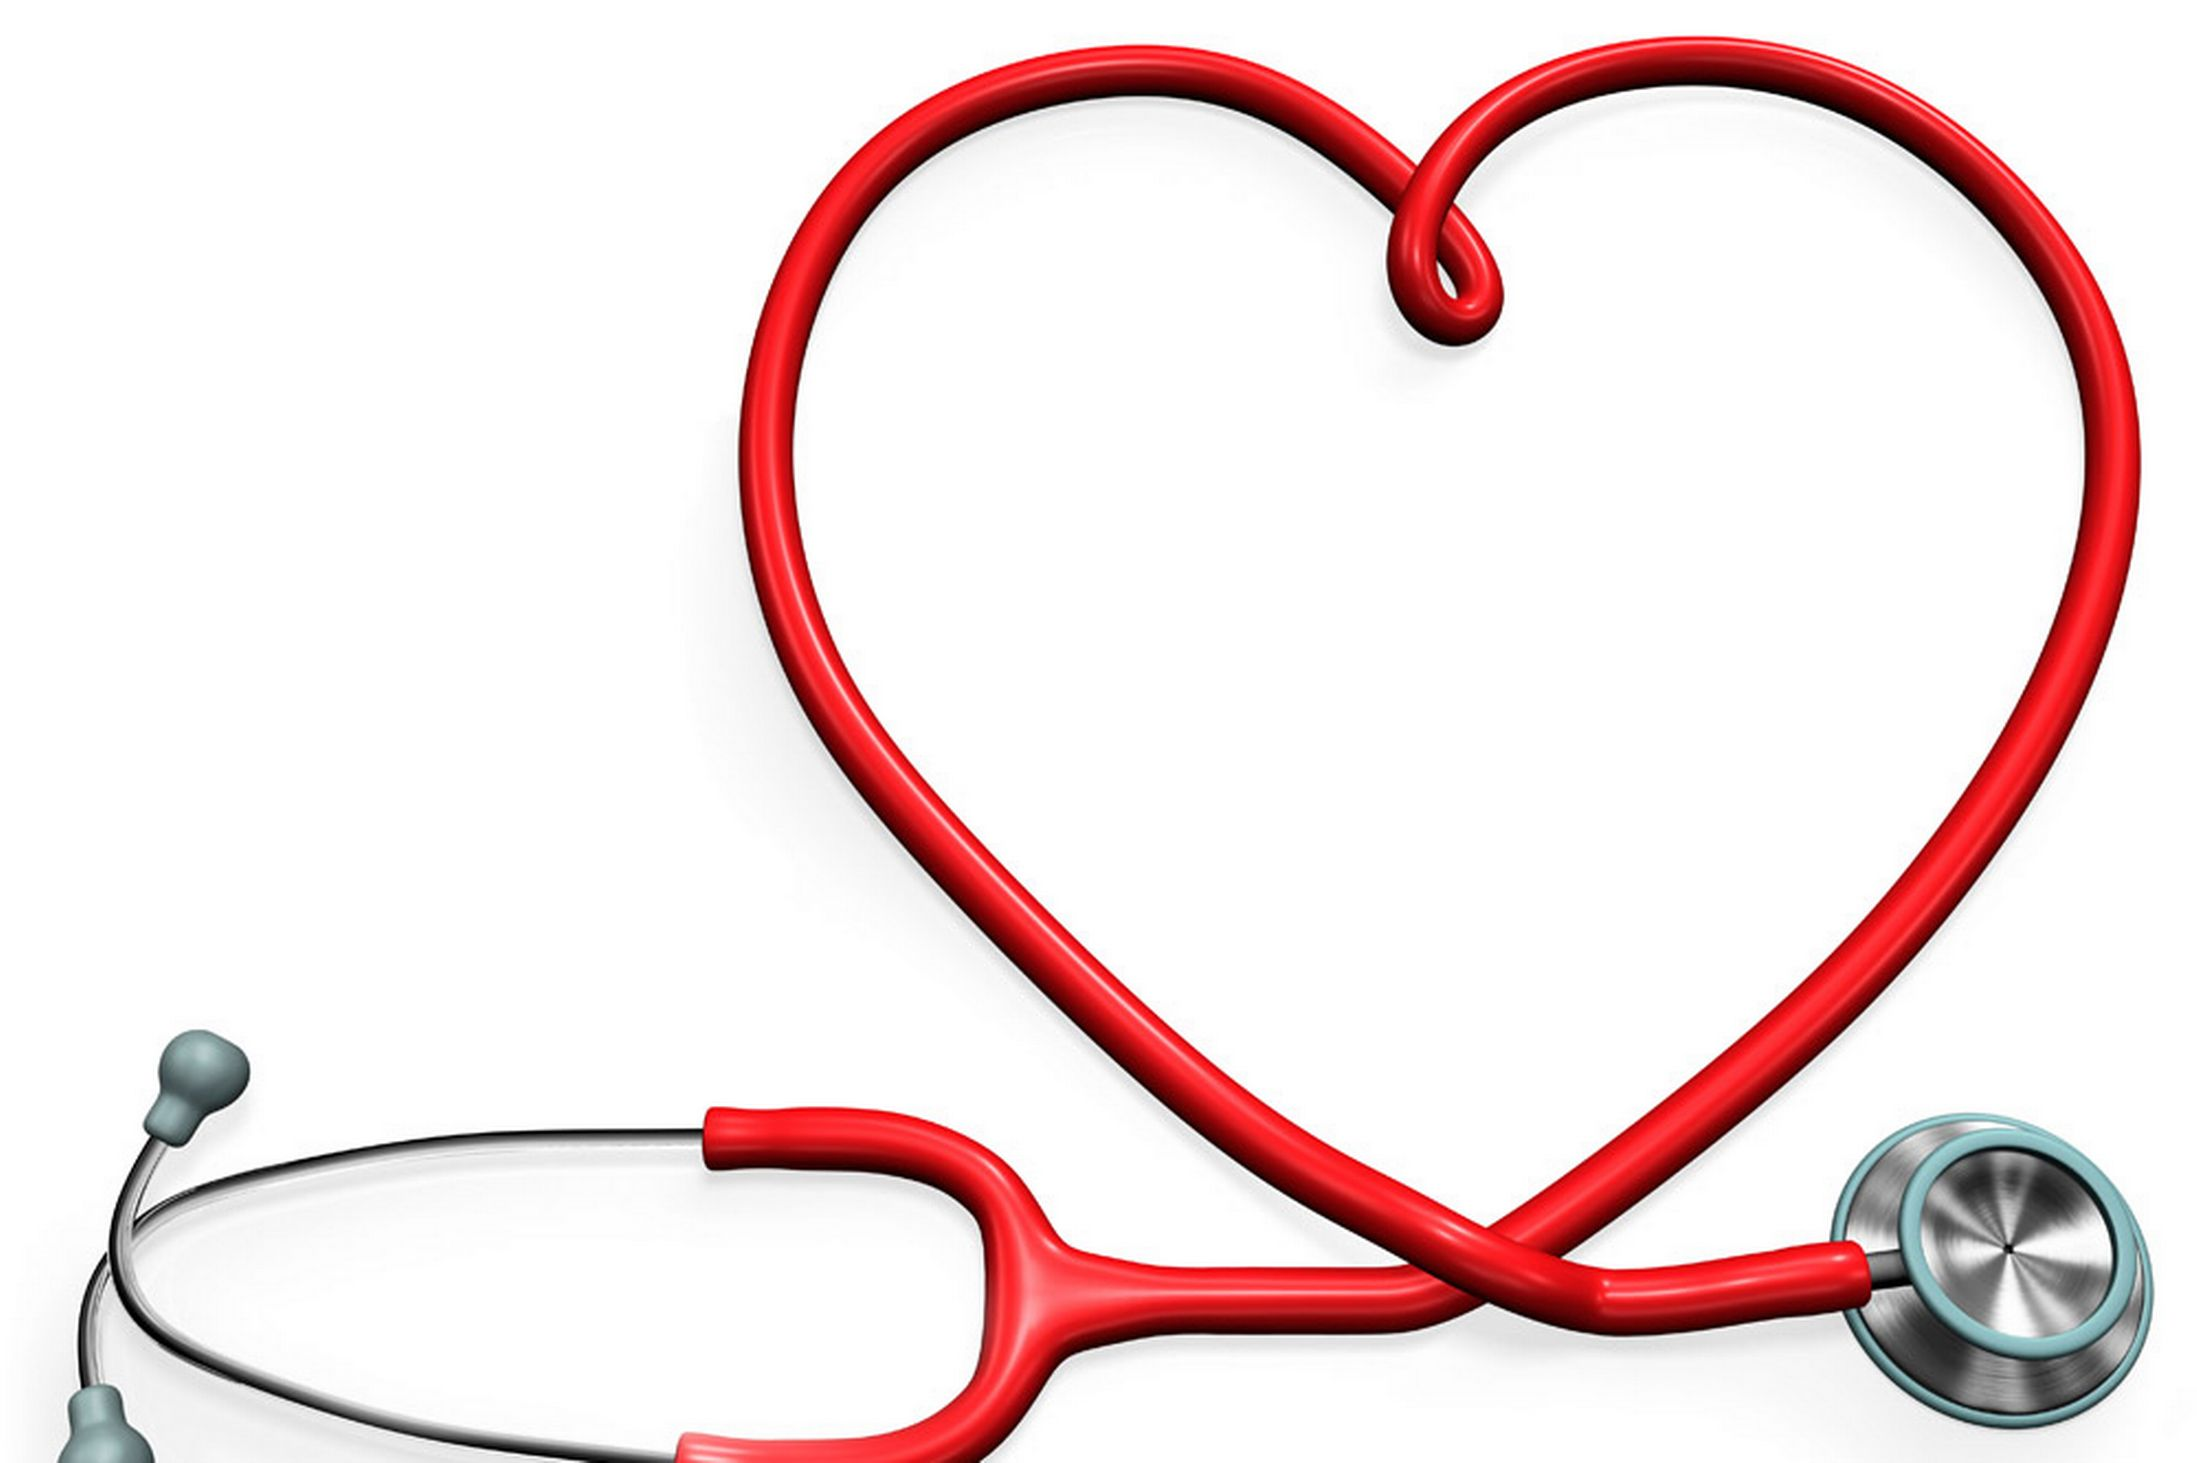 Transparent Png Hd Heart Stethoscope Background image #27518